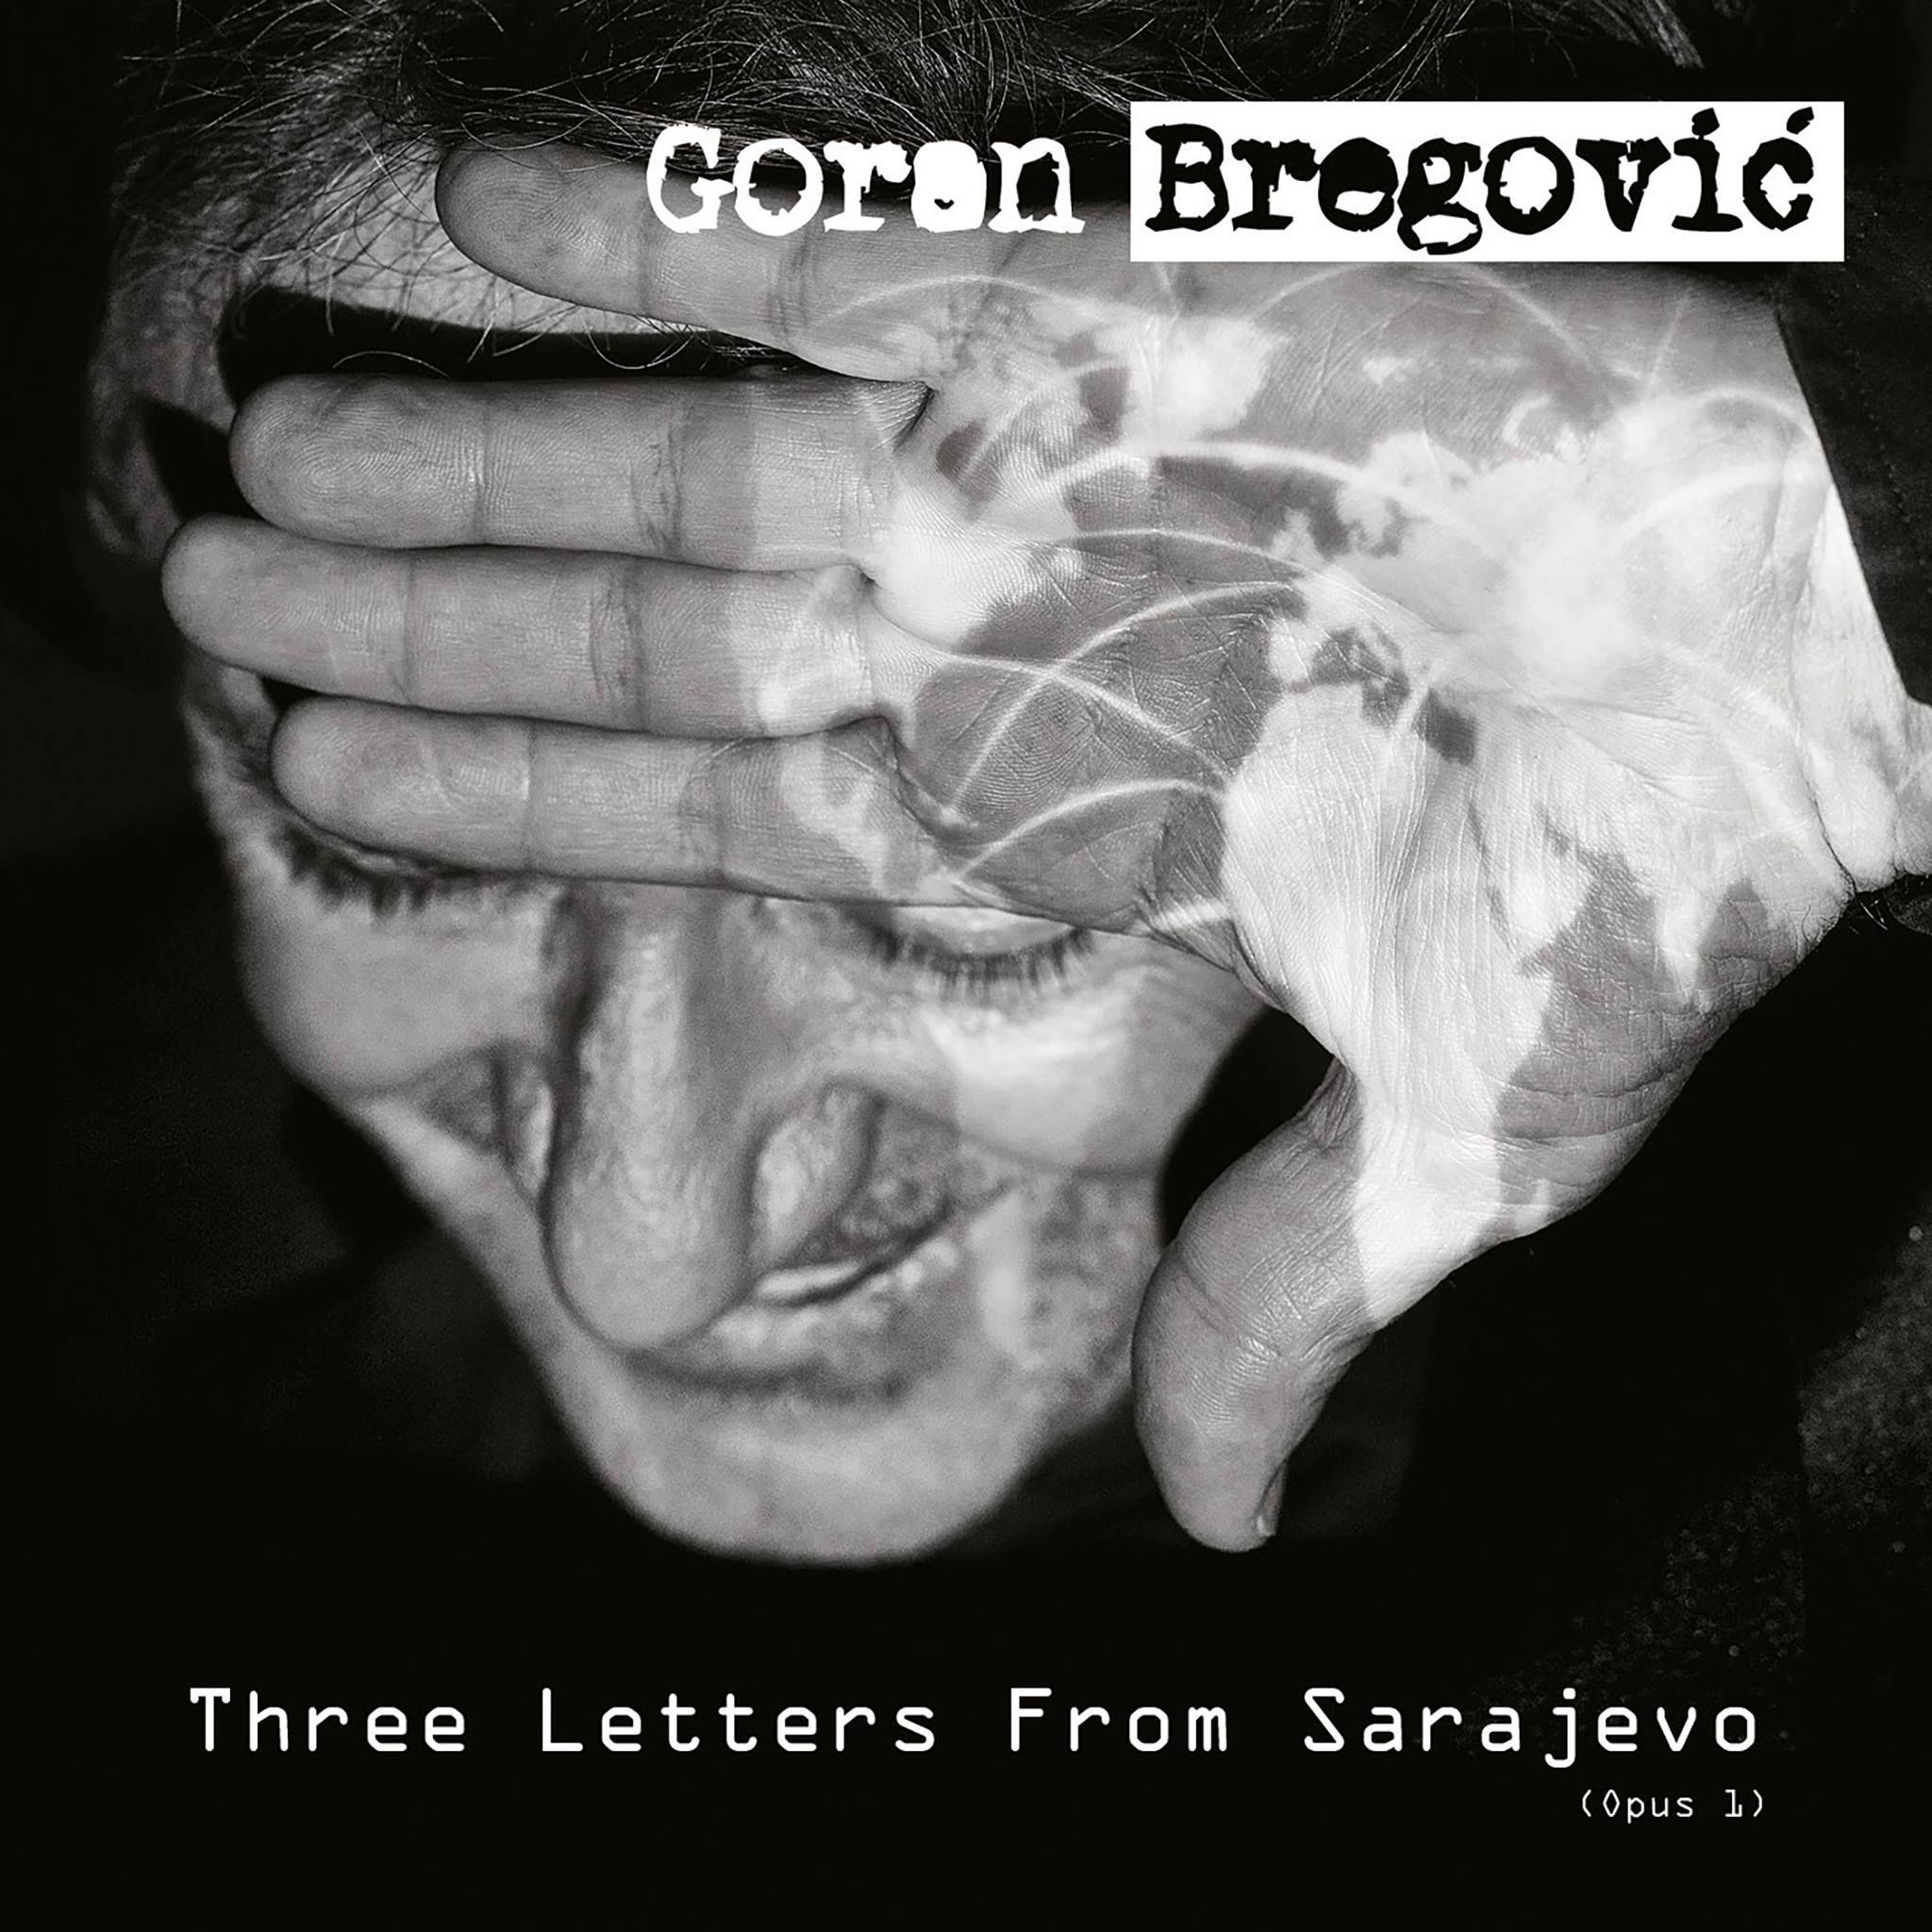 goran-bregovic-new-album-2017.jpg